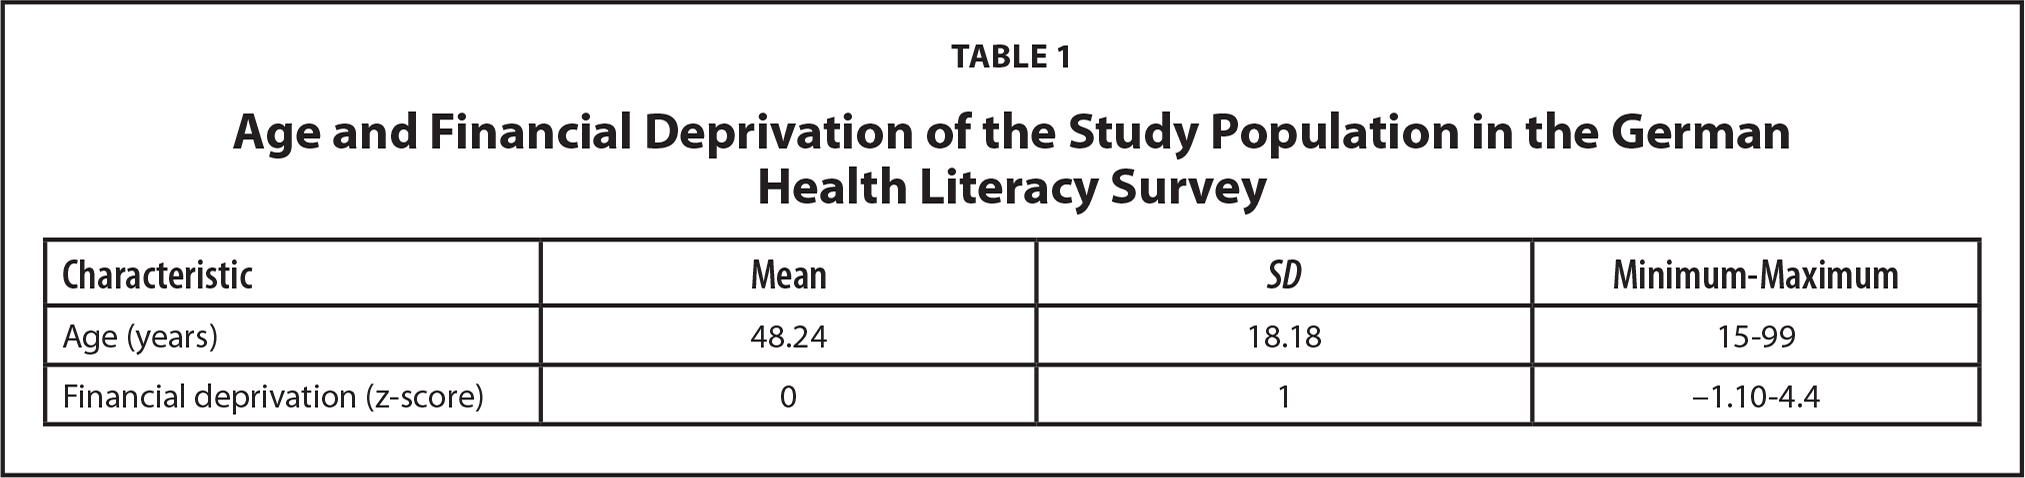 Age and Financial Deprivation of the Study Population in the German Health Literacy Survey